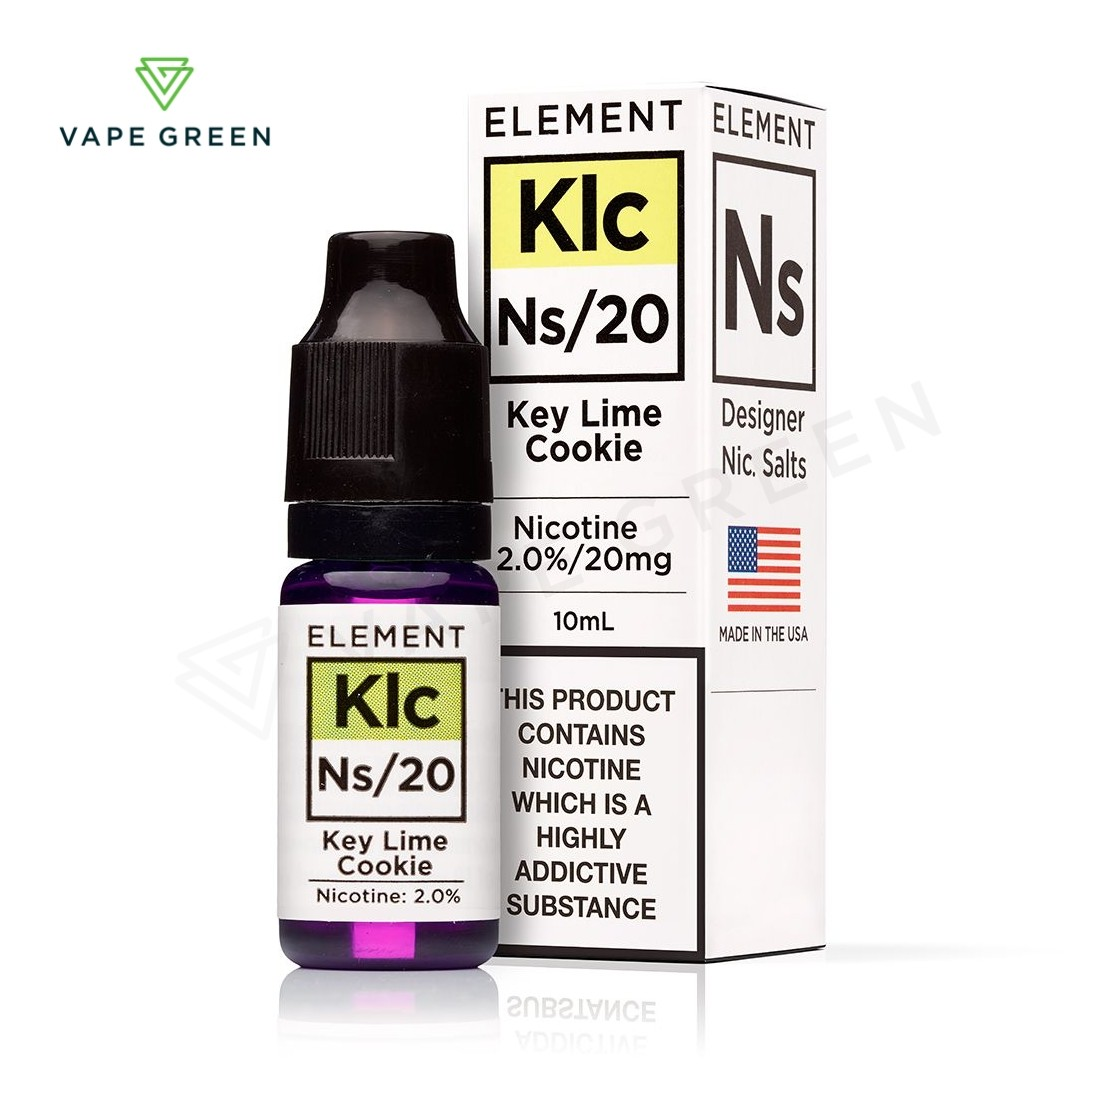 Key Lime Cookie E-liquid by Element NS10 & NS20